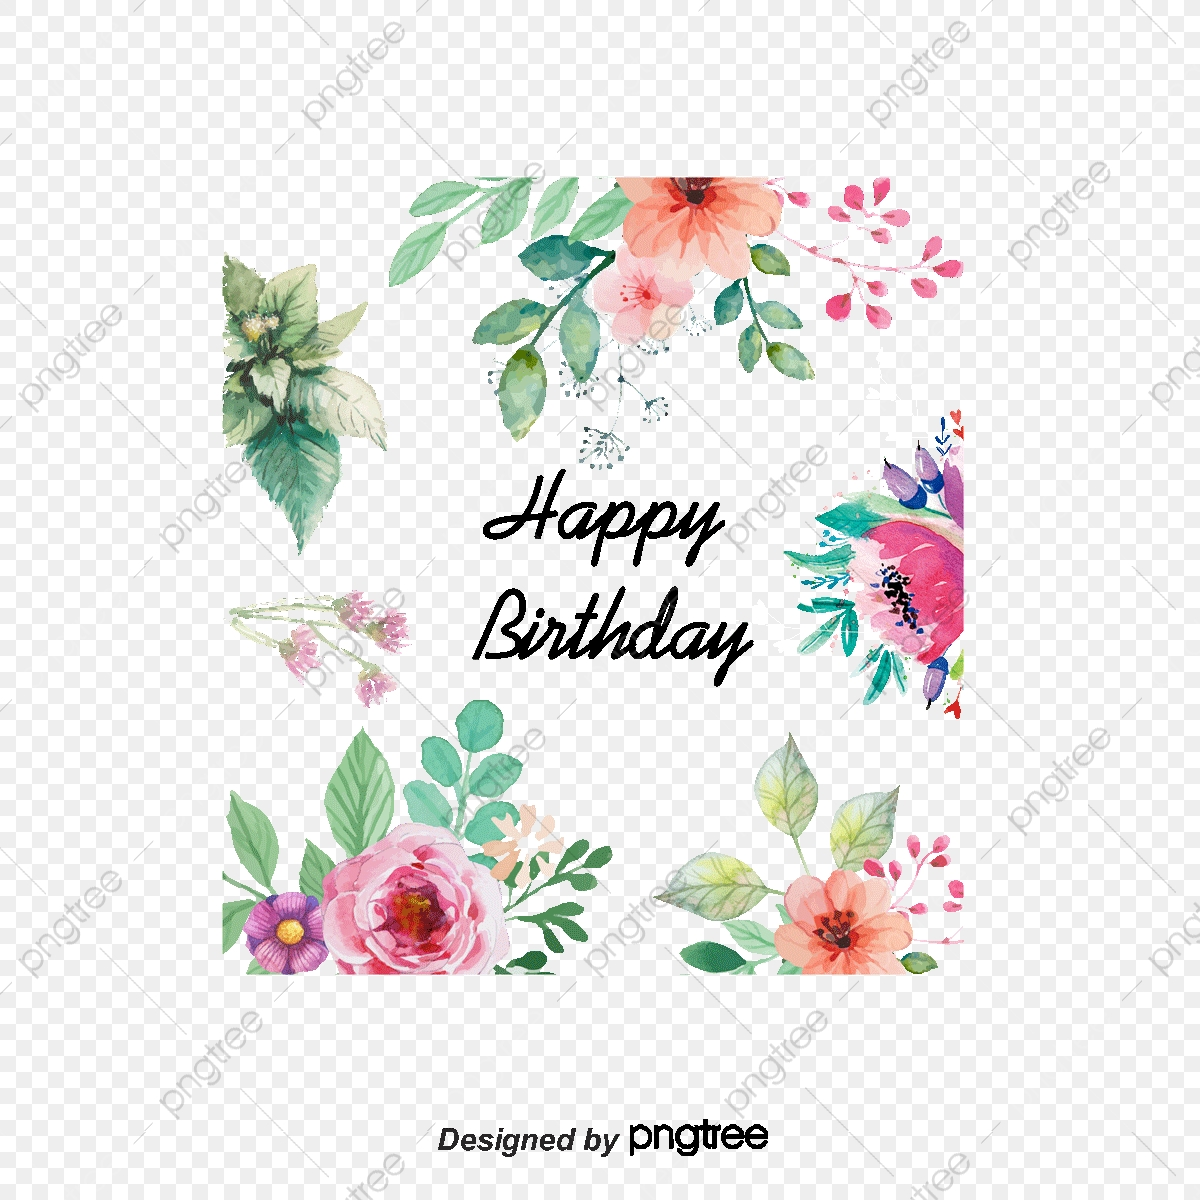 Vector Flowers Greeting Cards, Watercolor Style Flowers, Birthday.